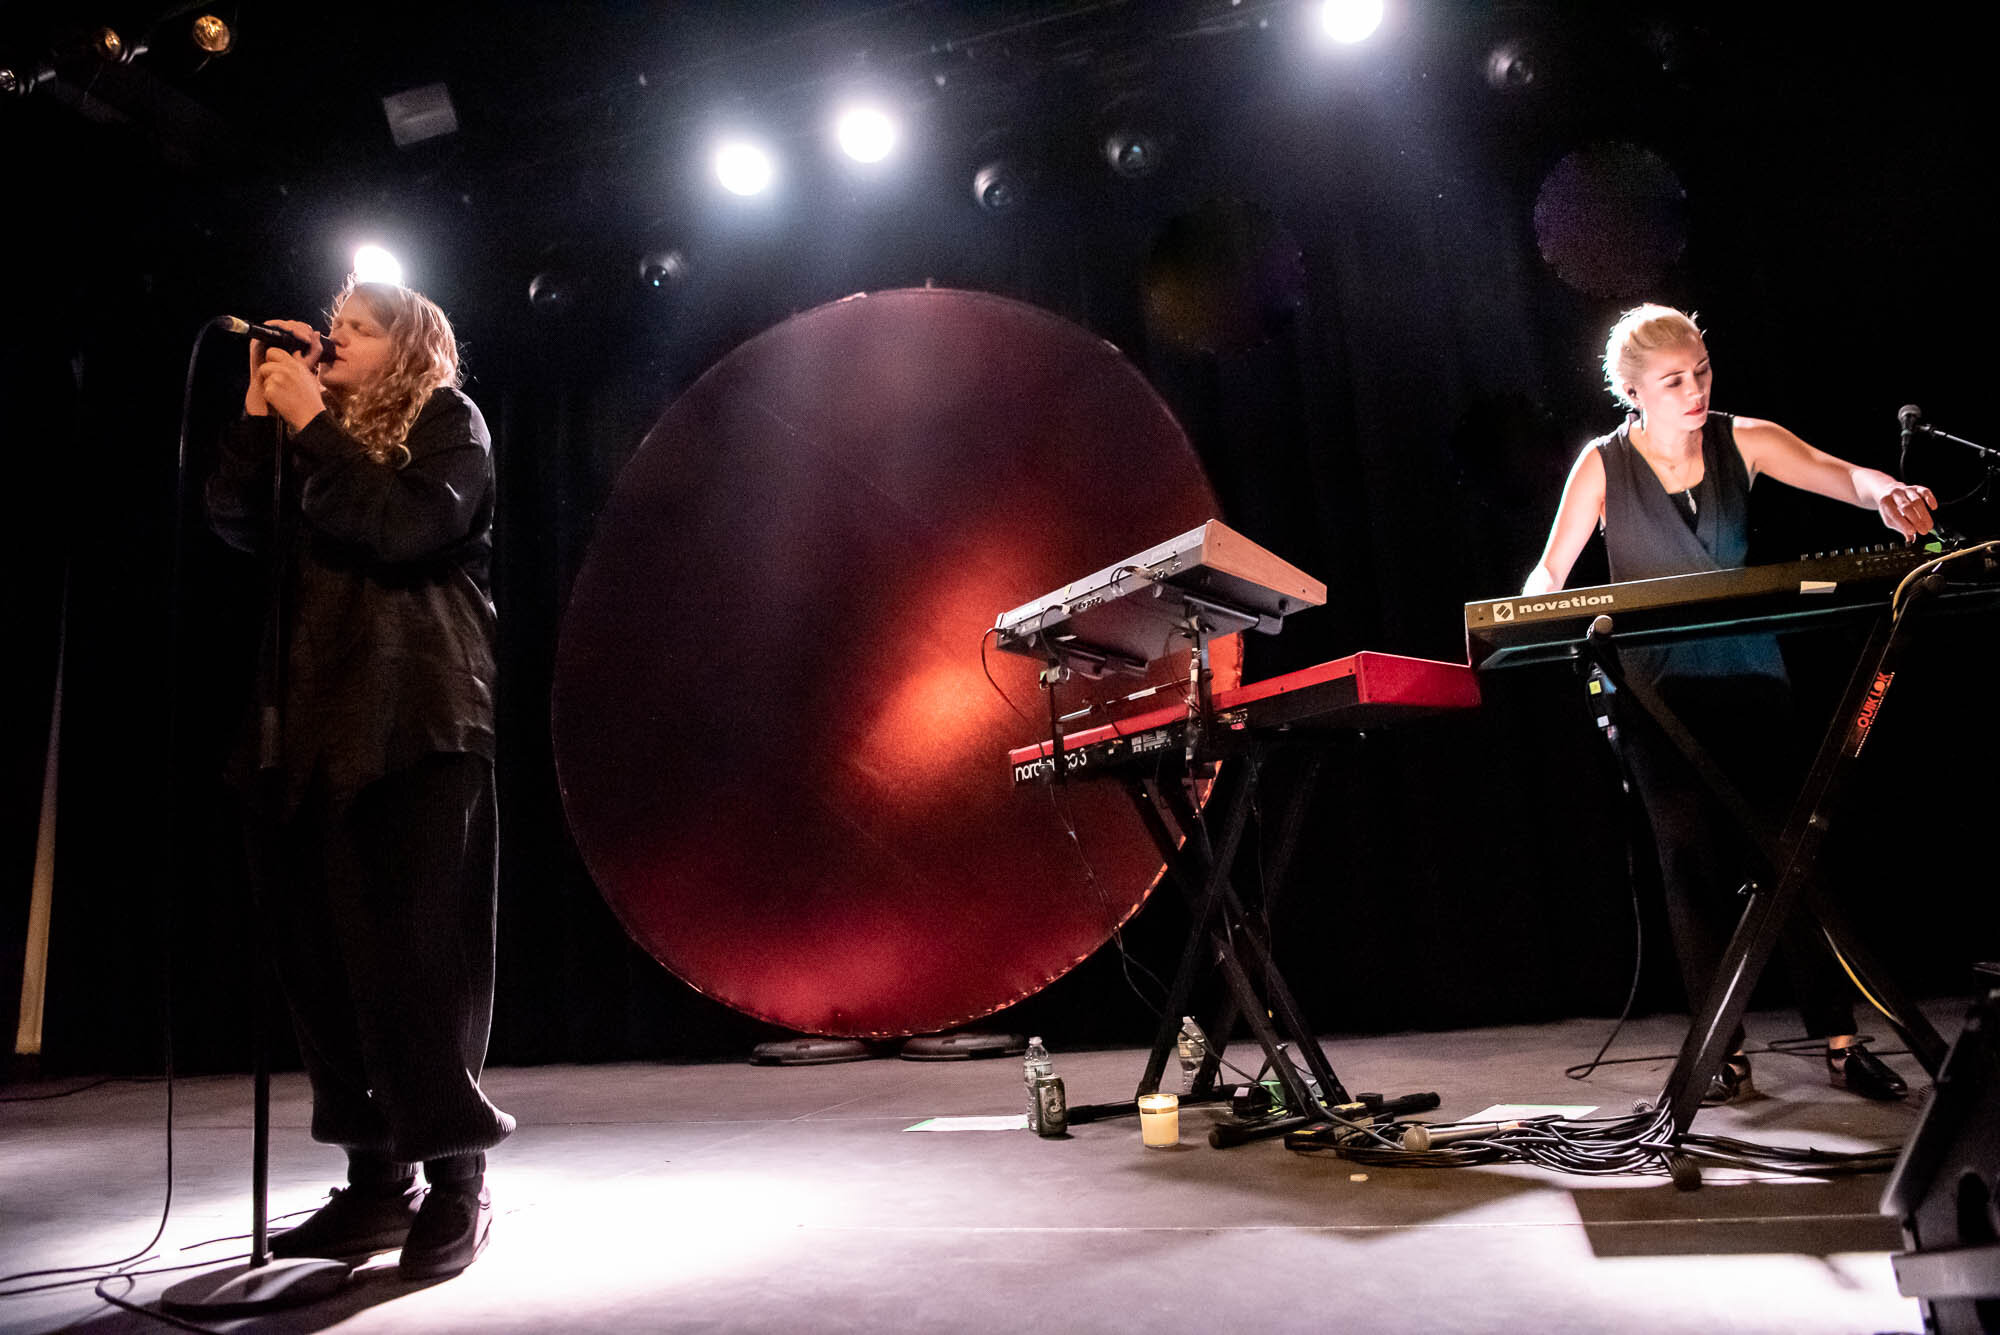 Kate Tempest and Clare Uchima performing at Elsewhere on Tuesday, October 1, 2019.